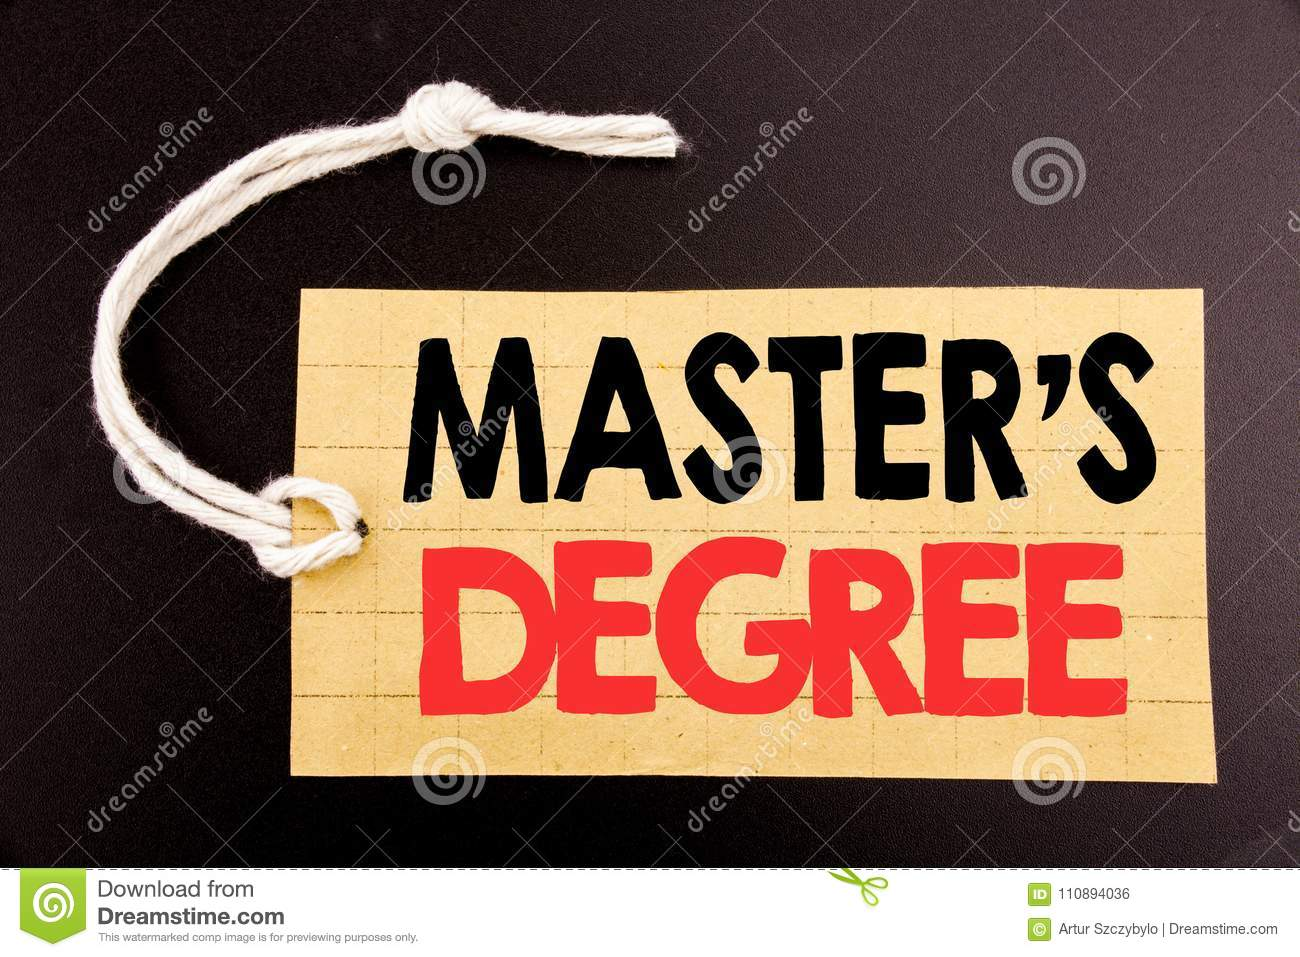 Do have write thesis masters degree